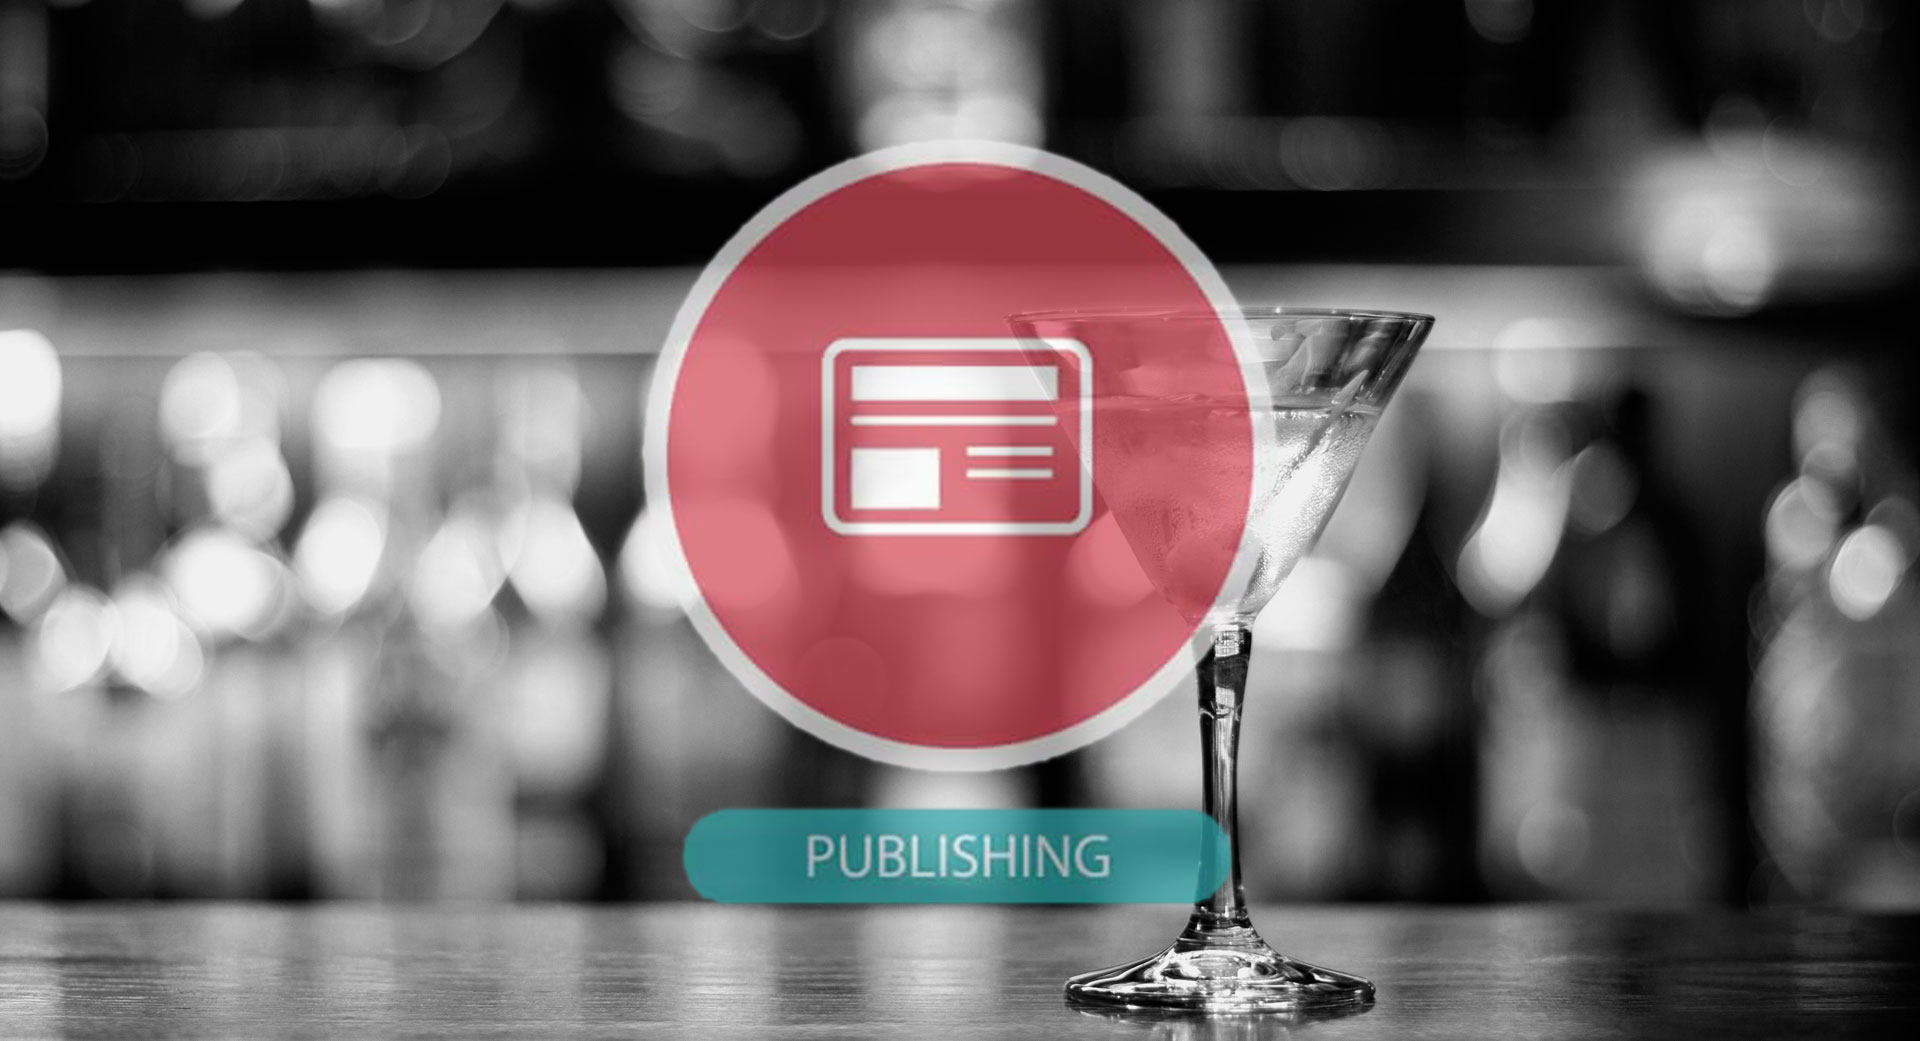 5-ways-to-promote-your-event-online-publishing